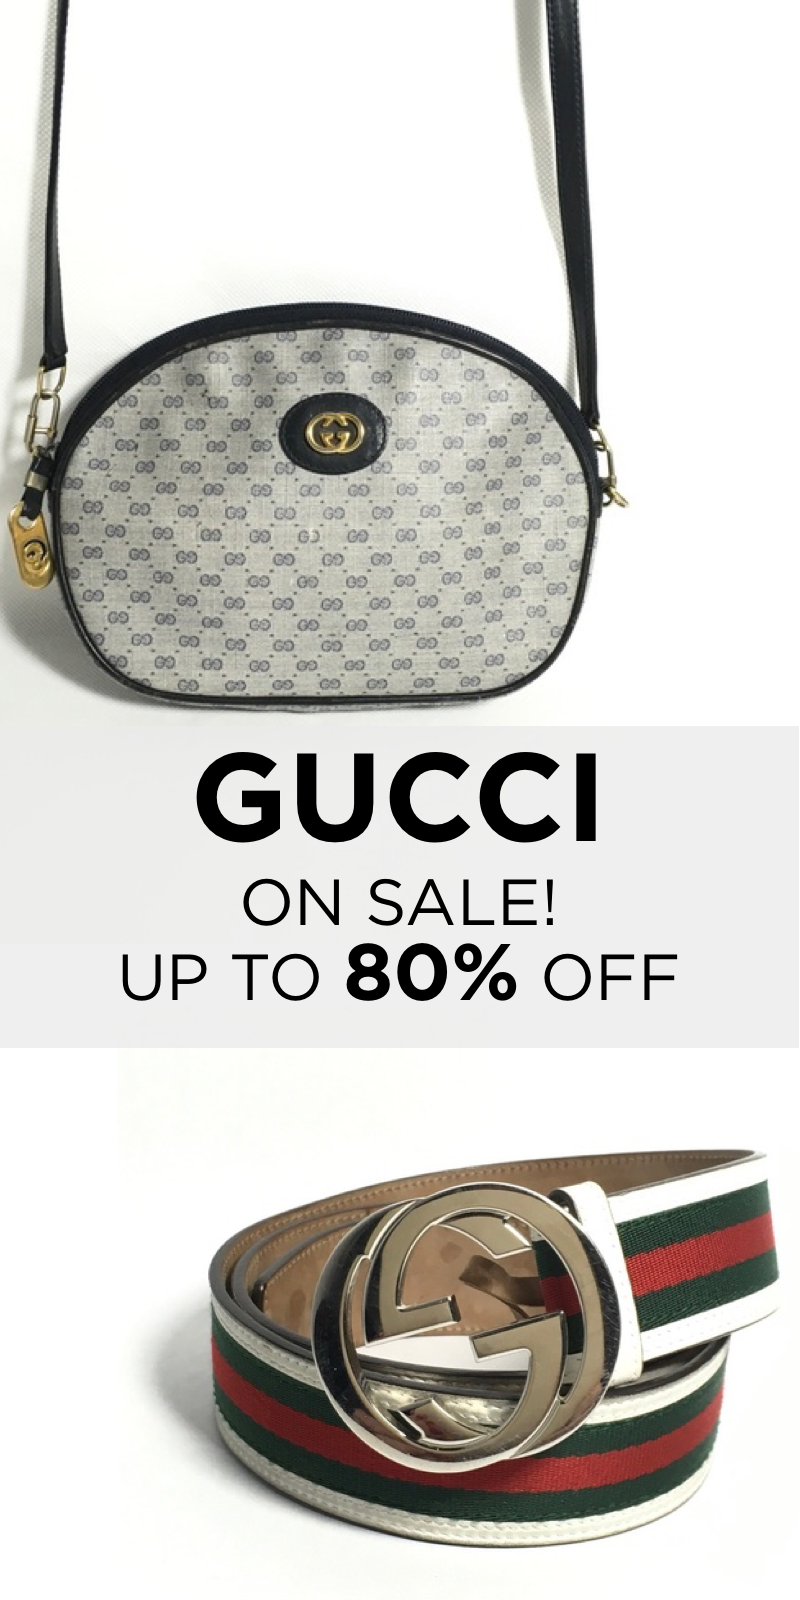 bafe991fd Find Gucci and more up to 70-80% off! Install the free app and shop now!  Poshmark - Buy & Sell Fashion